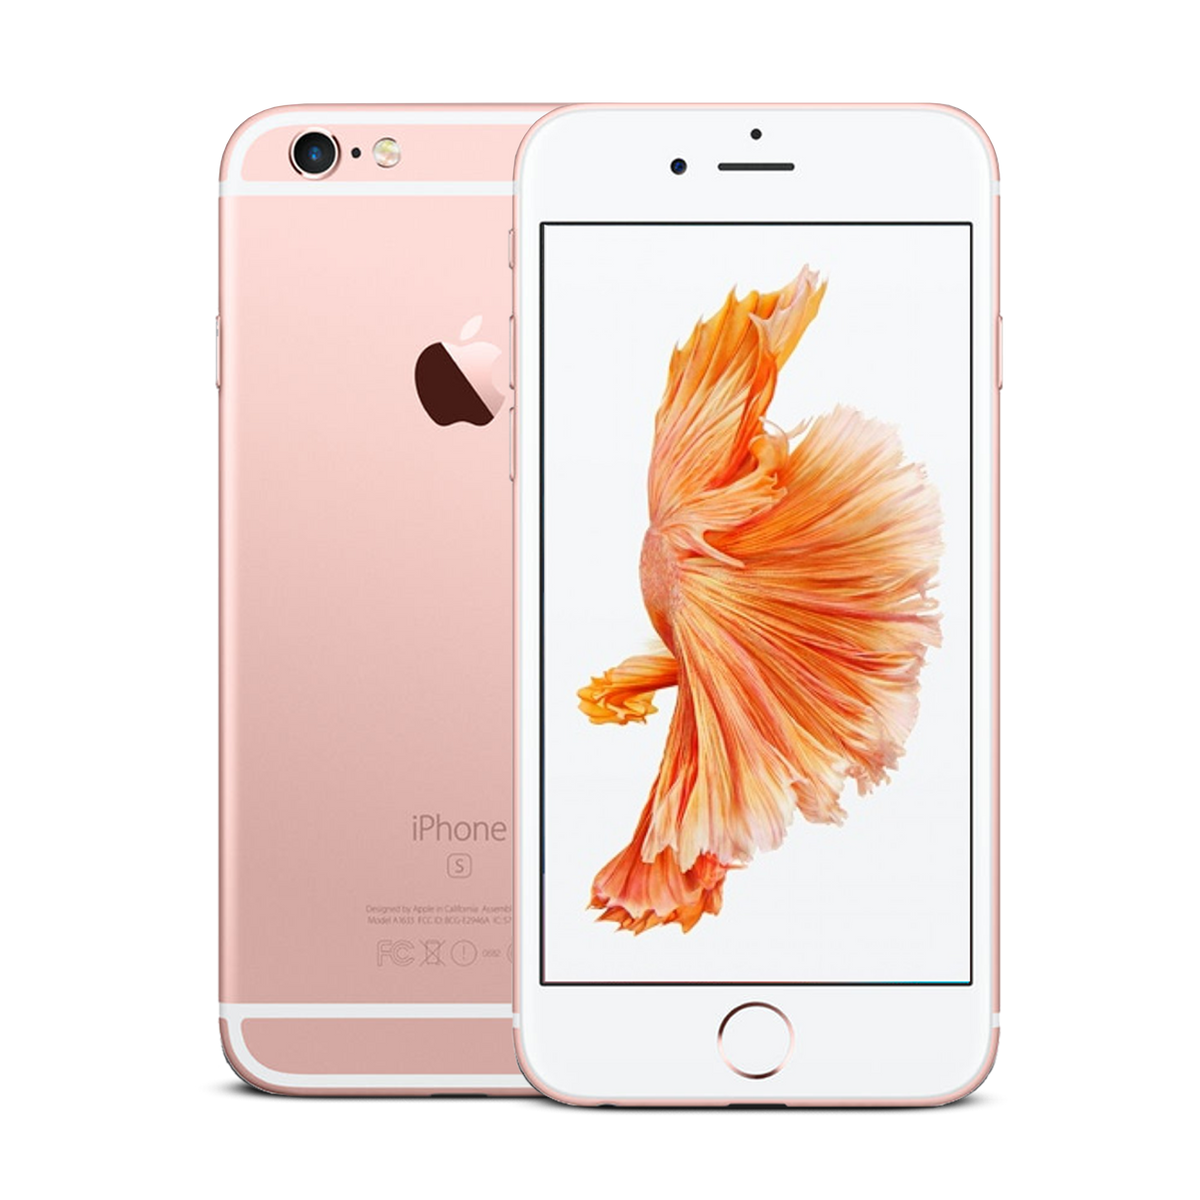 iPhone 6s 16GB Rosegold - Condition As New